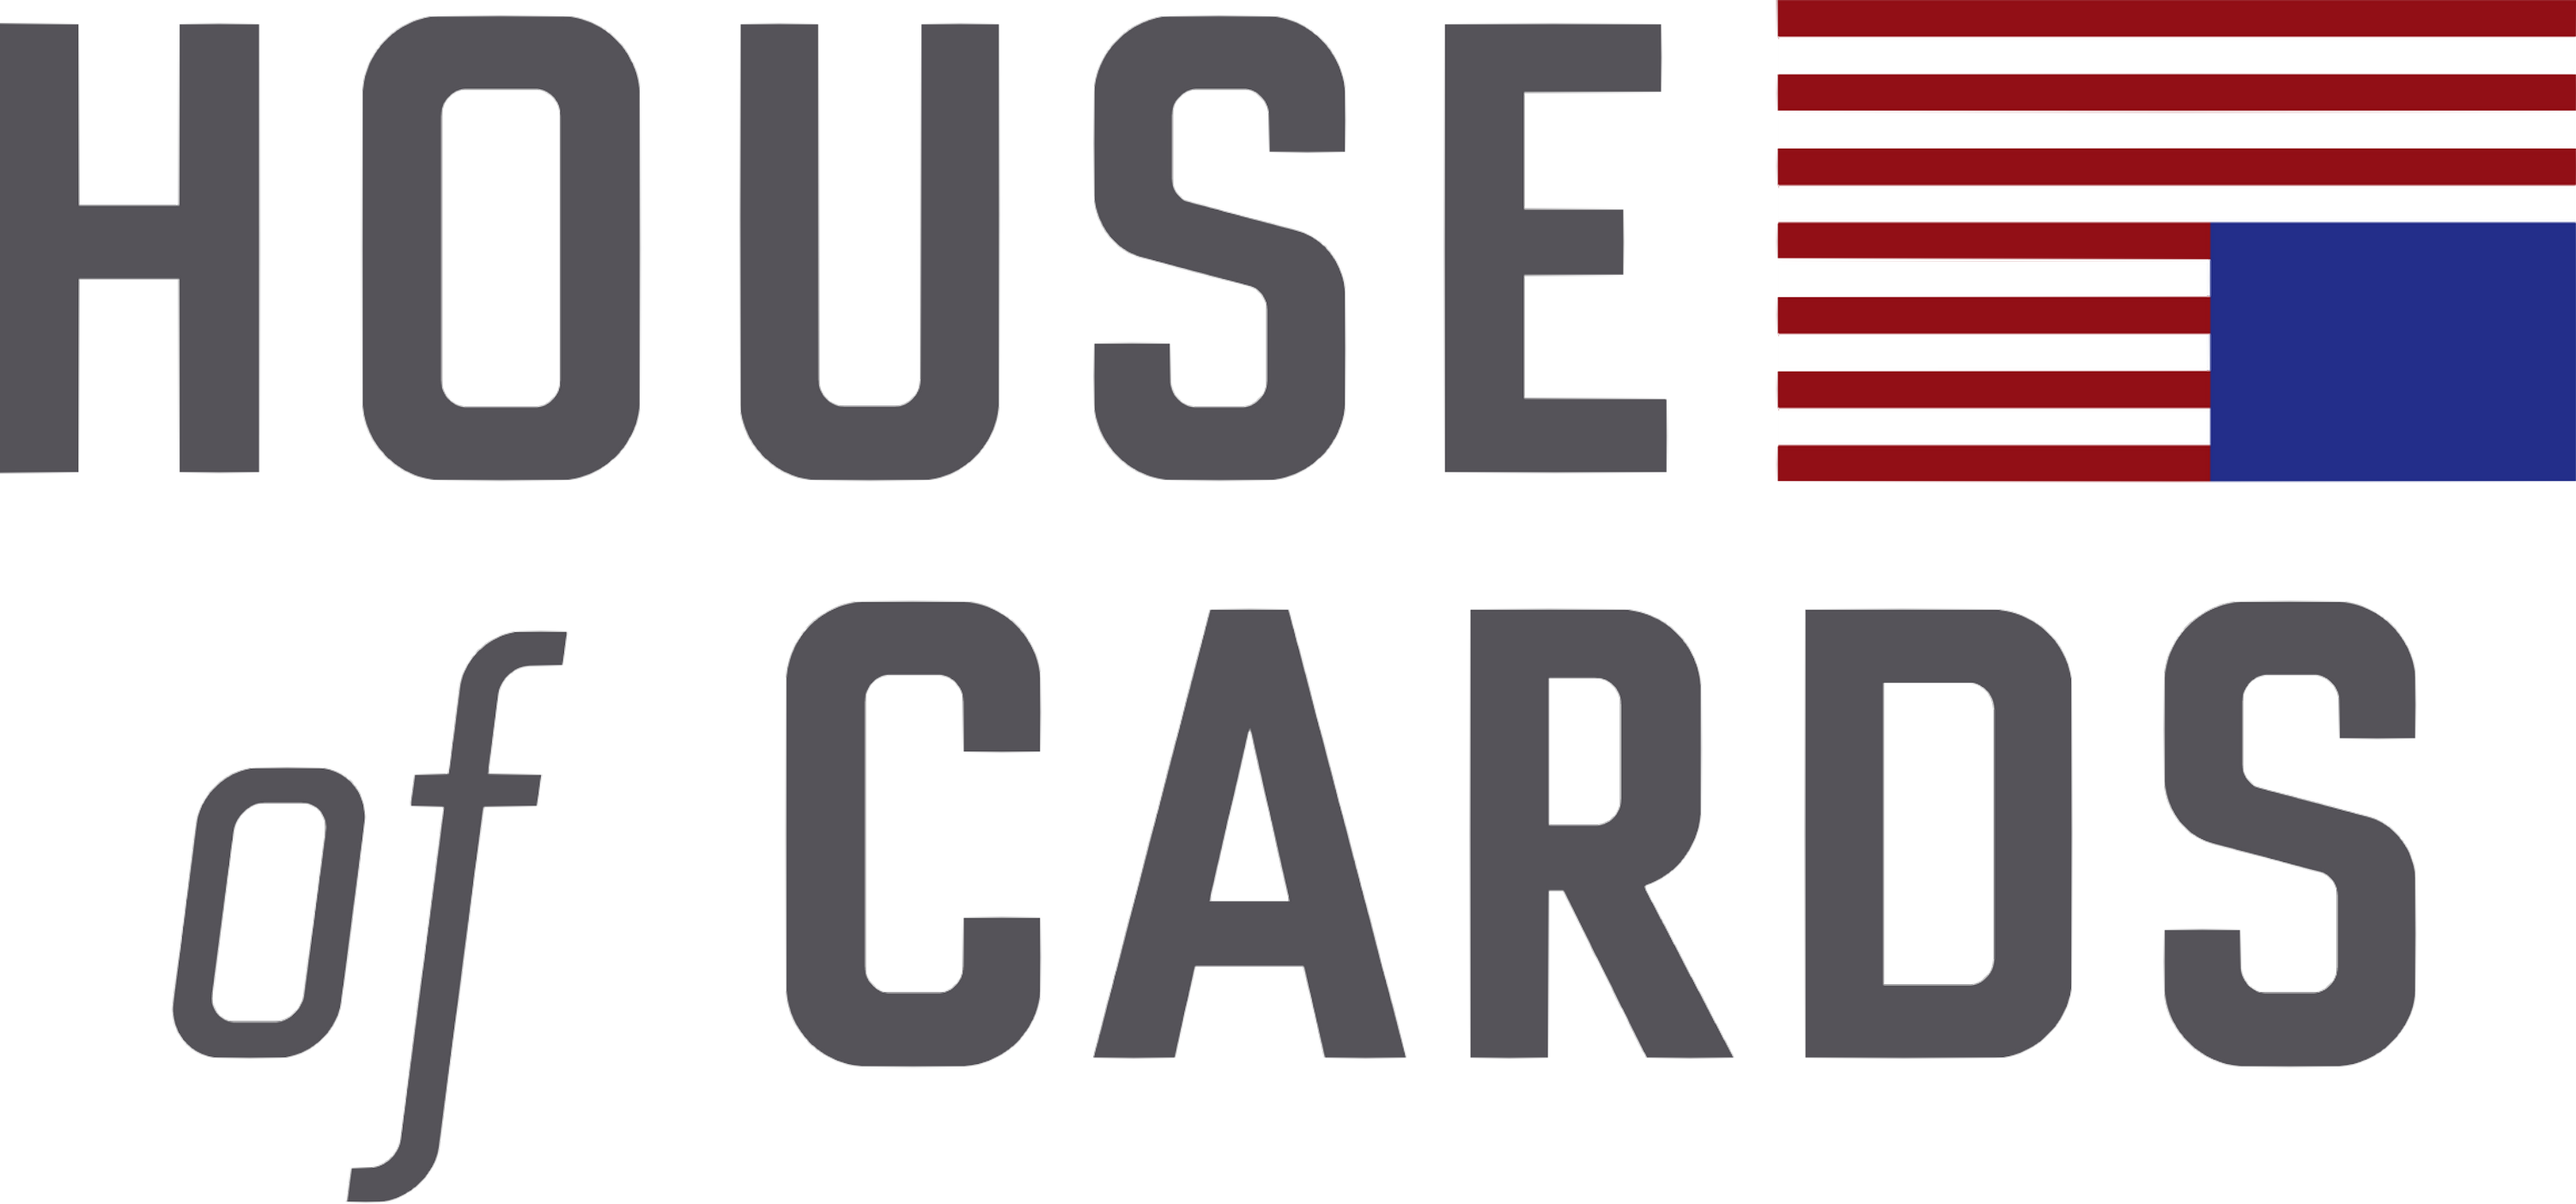 House Of Cards Png - HD House Of Cards Logo Png - Graphics Transparent PNG Image ...